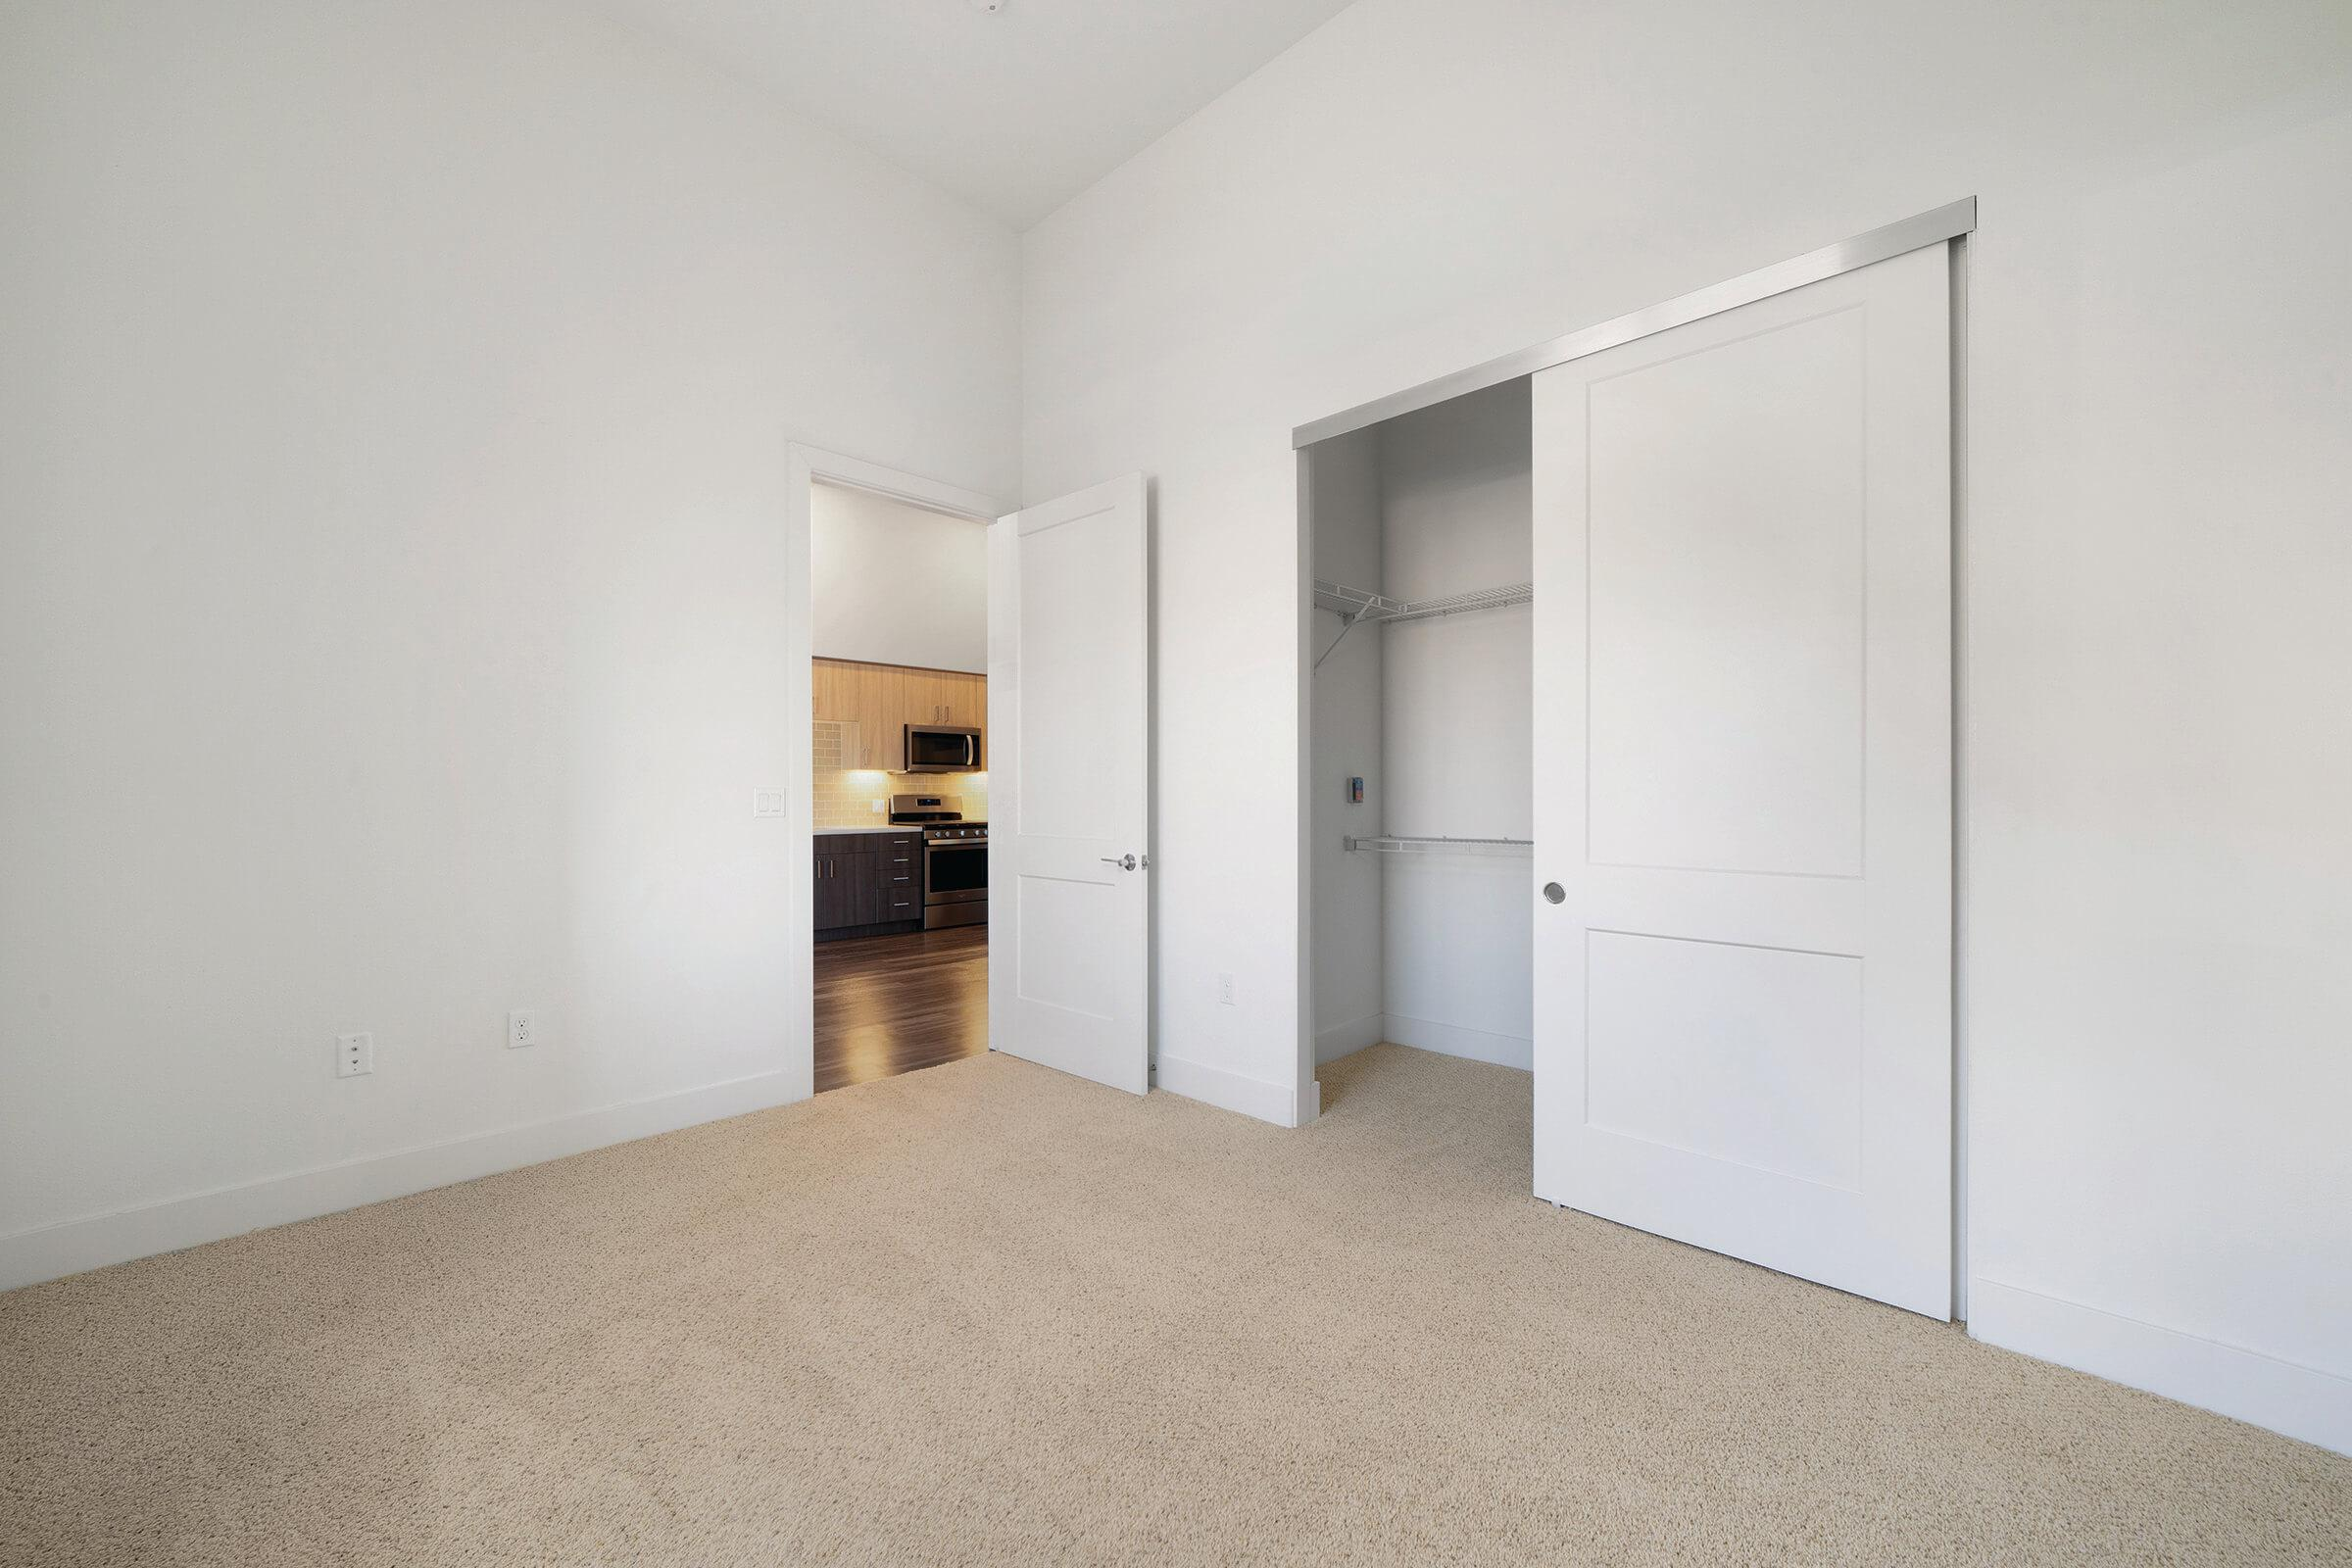 Unfurnished bedroom with open closet